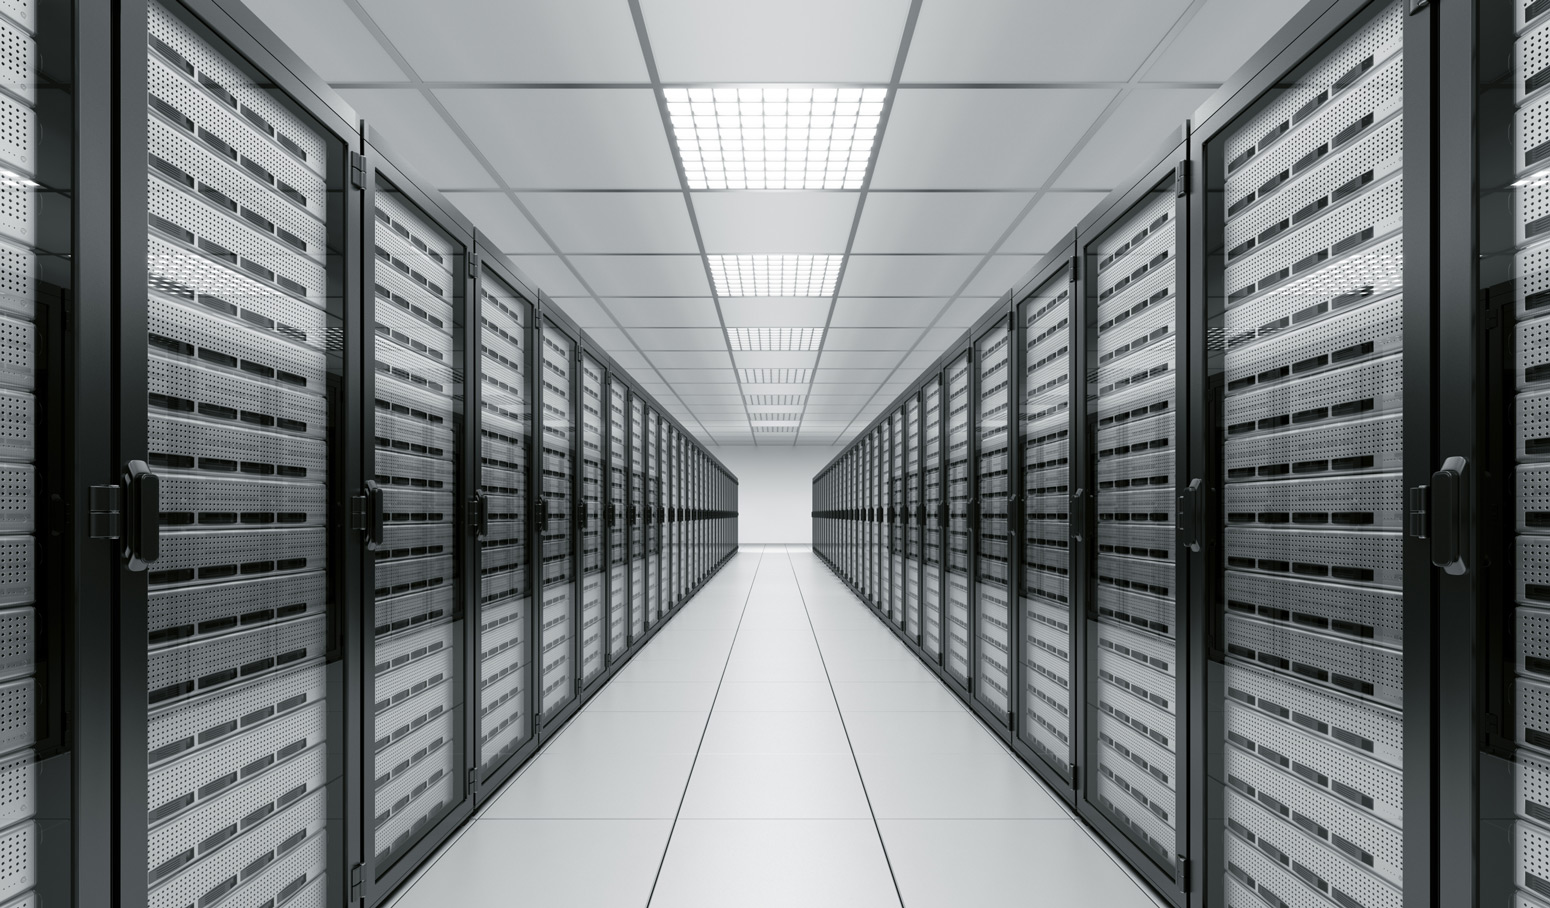 stacks of computer equipment in data center